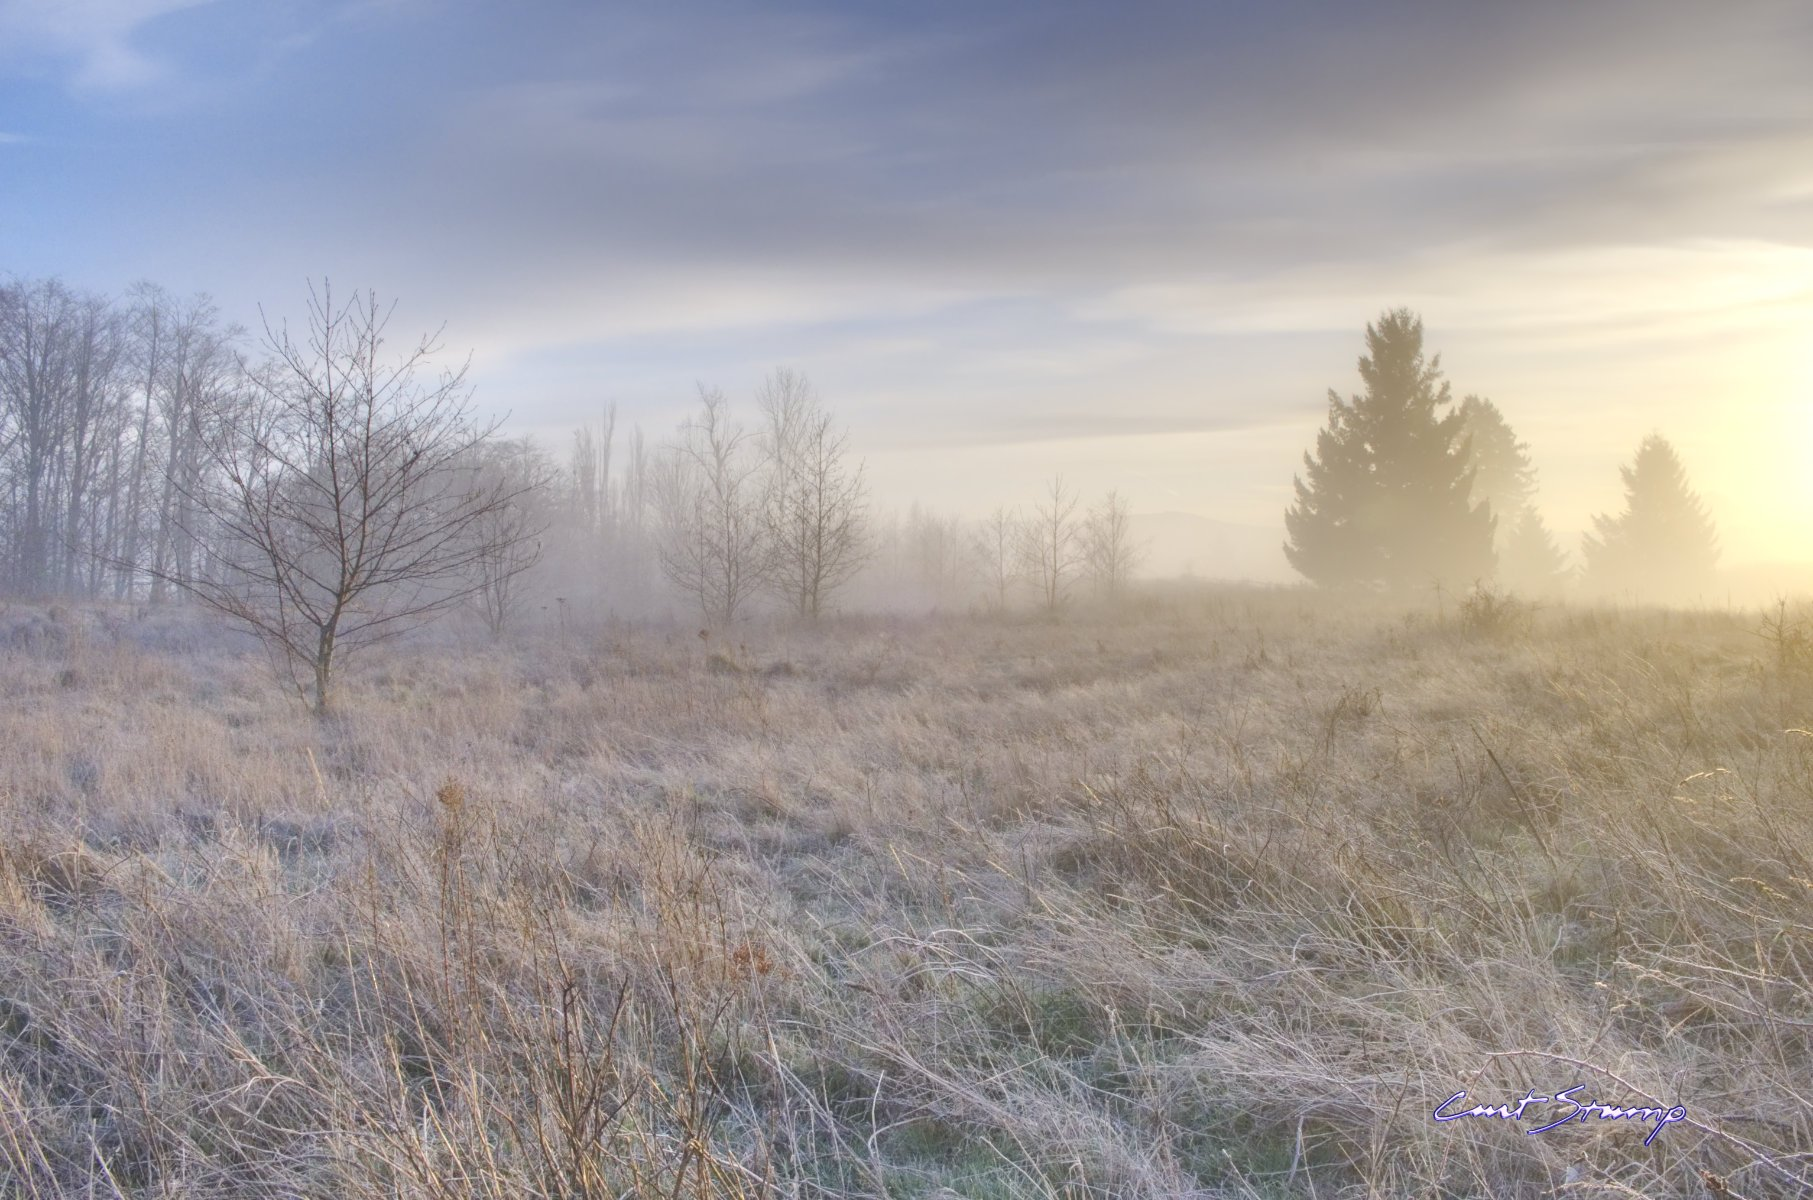 Frosty morning in a field (Powell Butte in Portland, Oregon). Warm yellow sun, frost, trees in distance, clouds and blue sky.